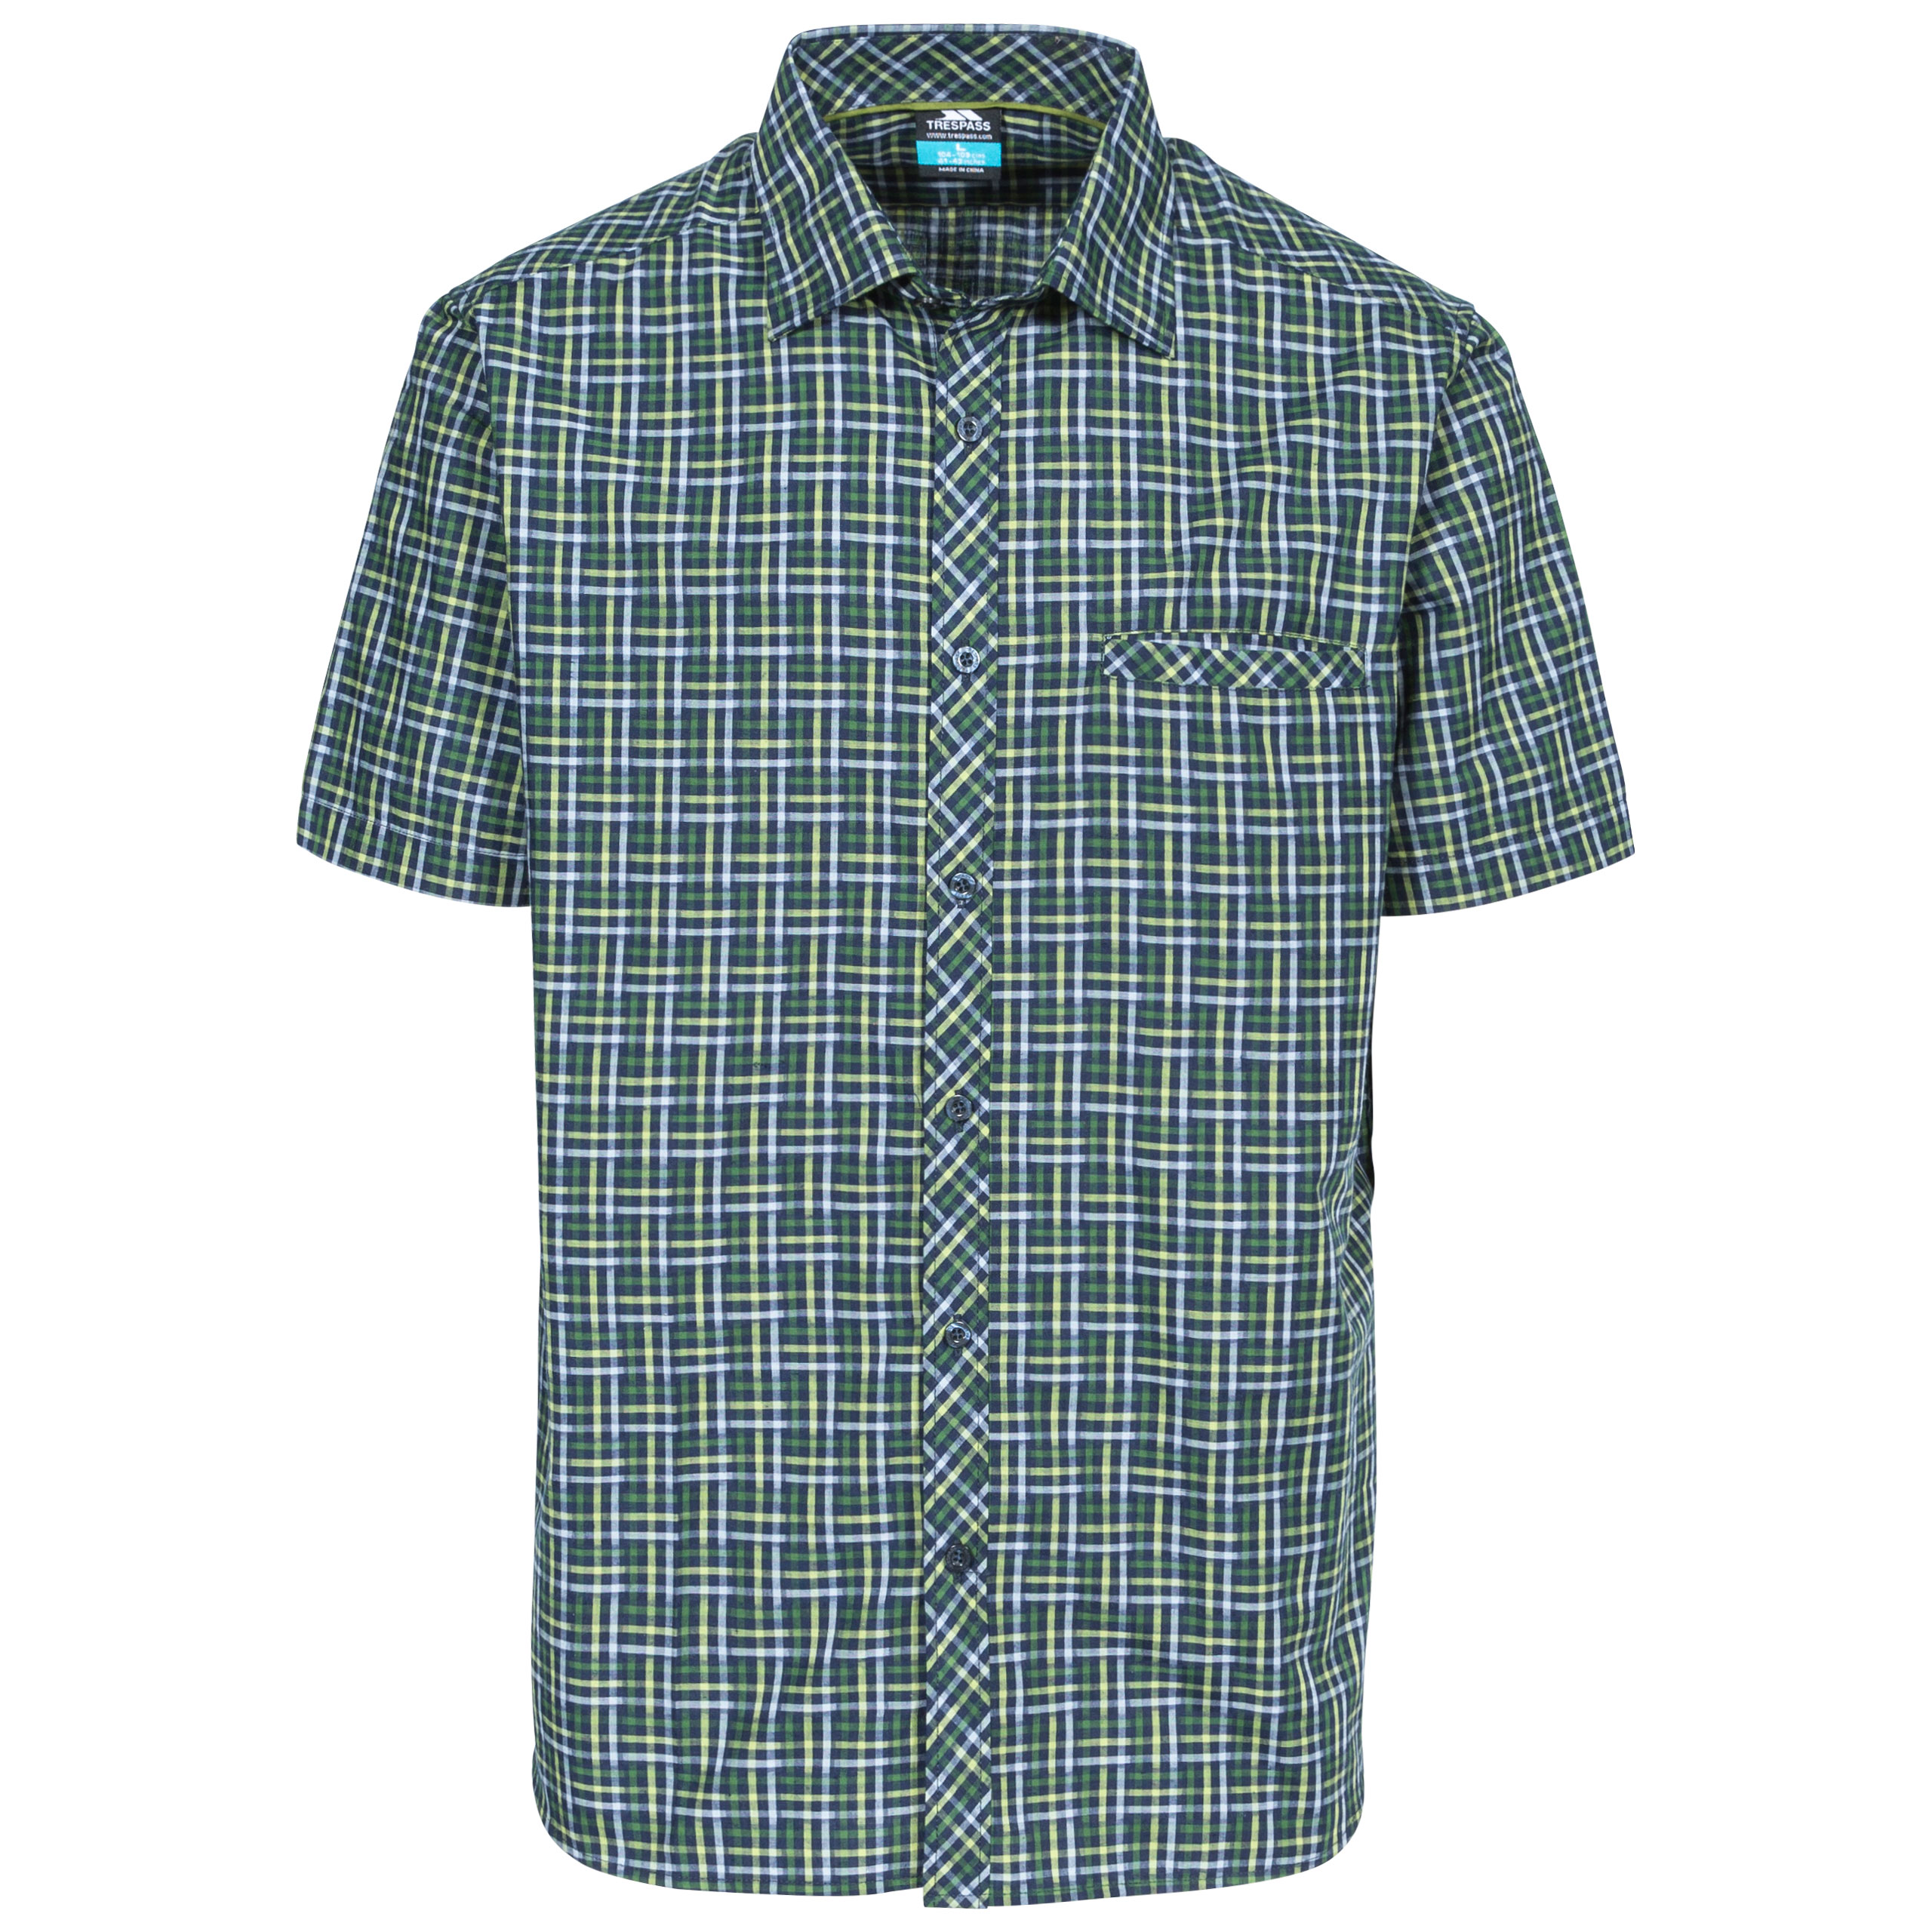 Trespass-Baffin-Mens-Short-Sleeved-Check-Shirt-Casual-T-Shirt-with-Chest-Pocket thumbnail 15